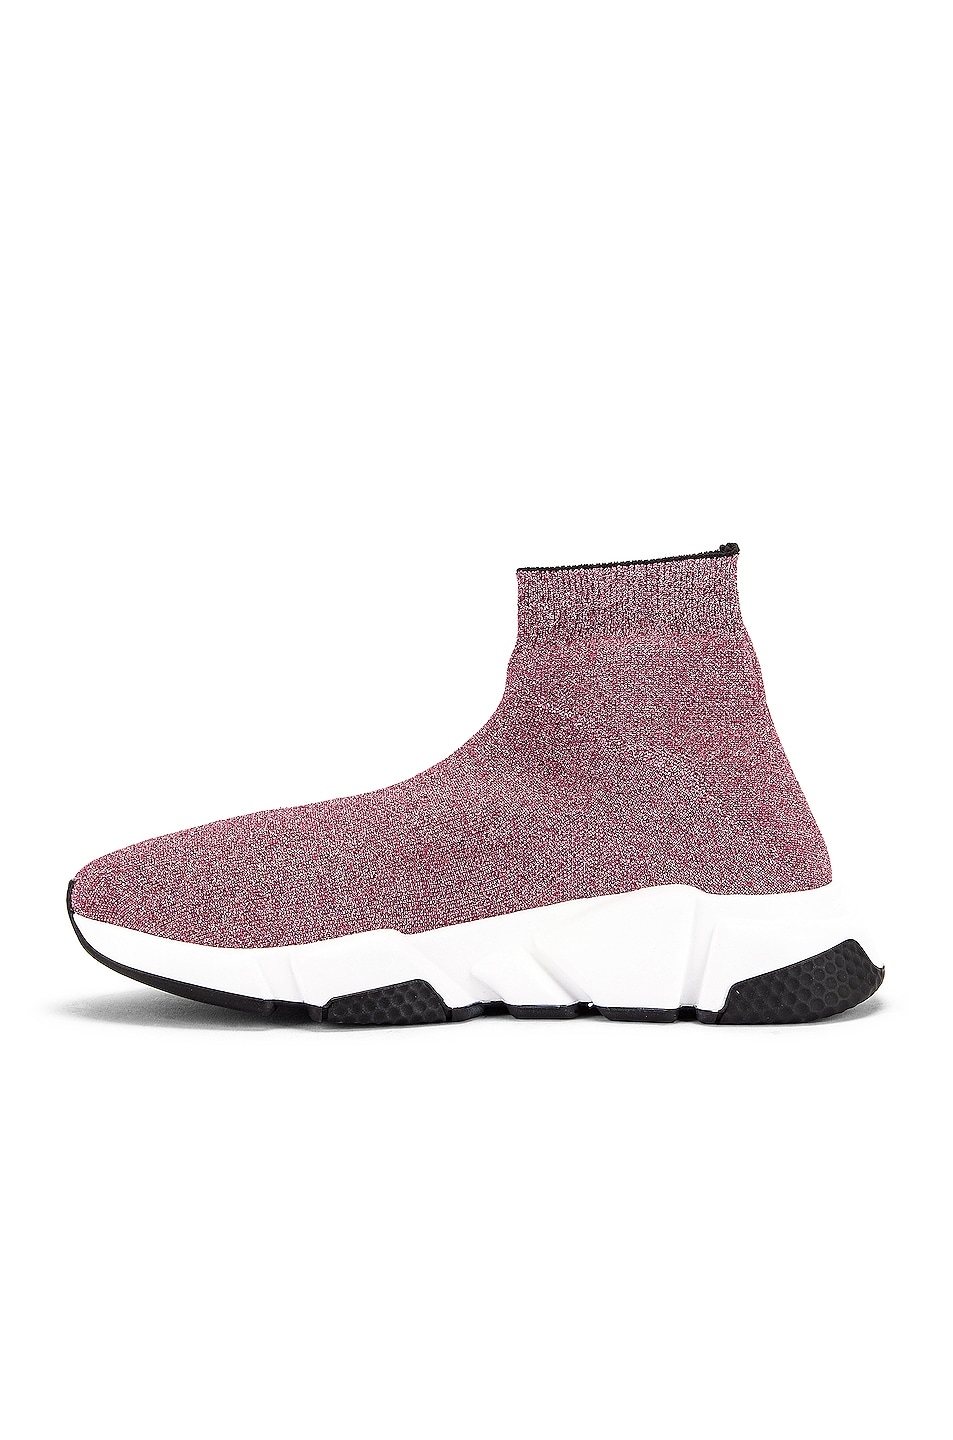 Image 5 of Balenciaga Bicolor Speed Sneakers in Pink & White & Black